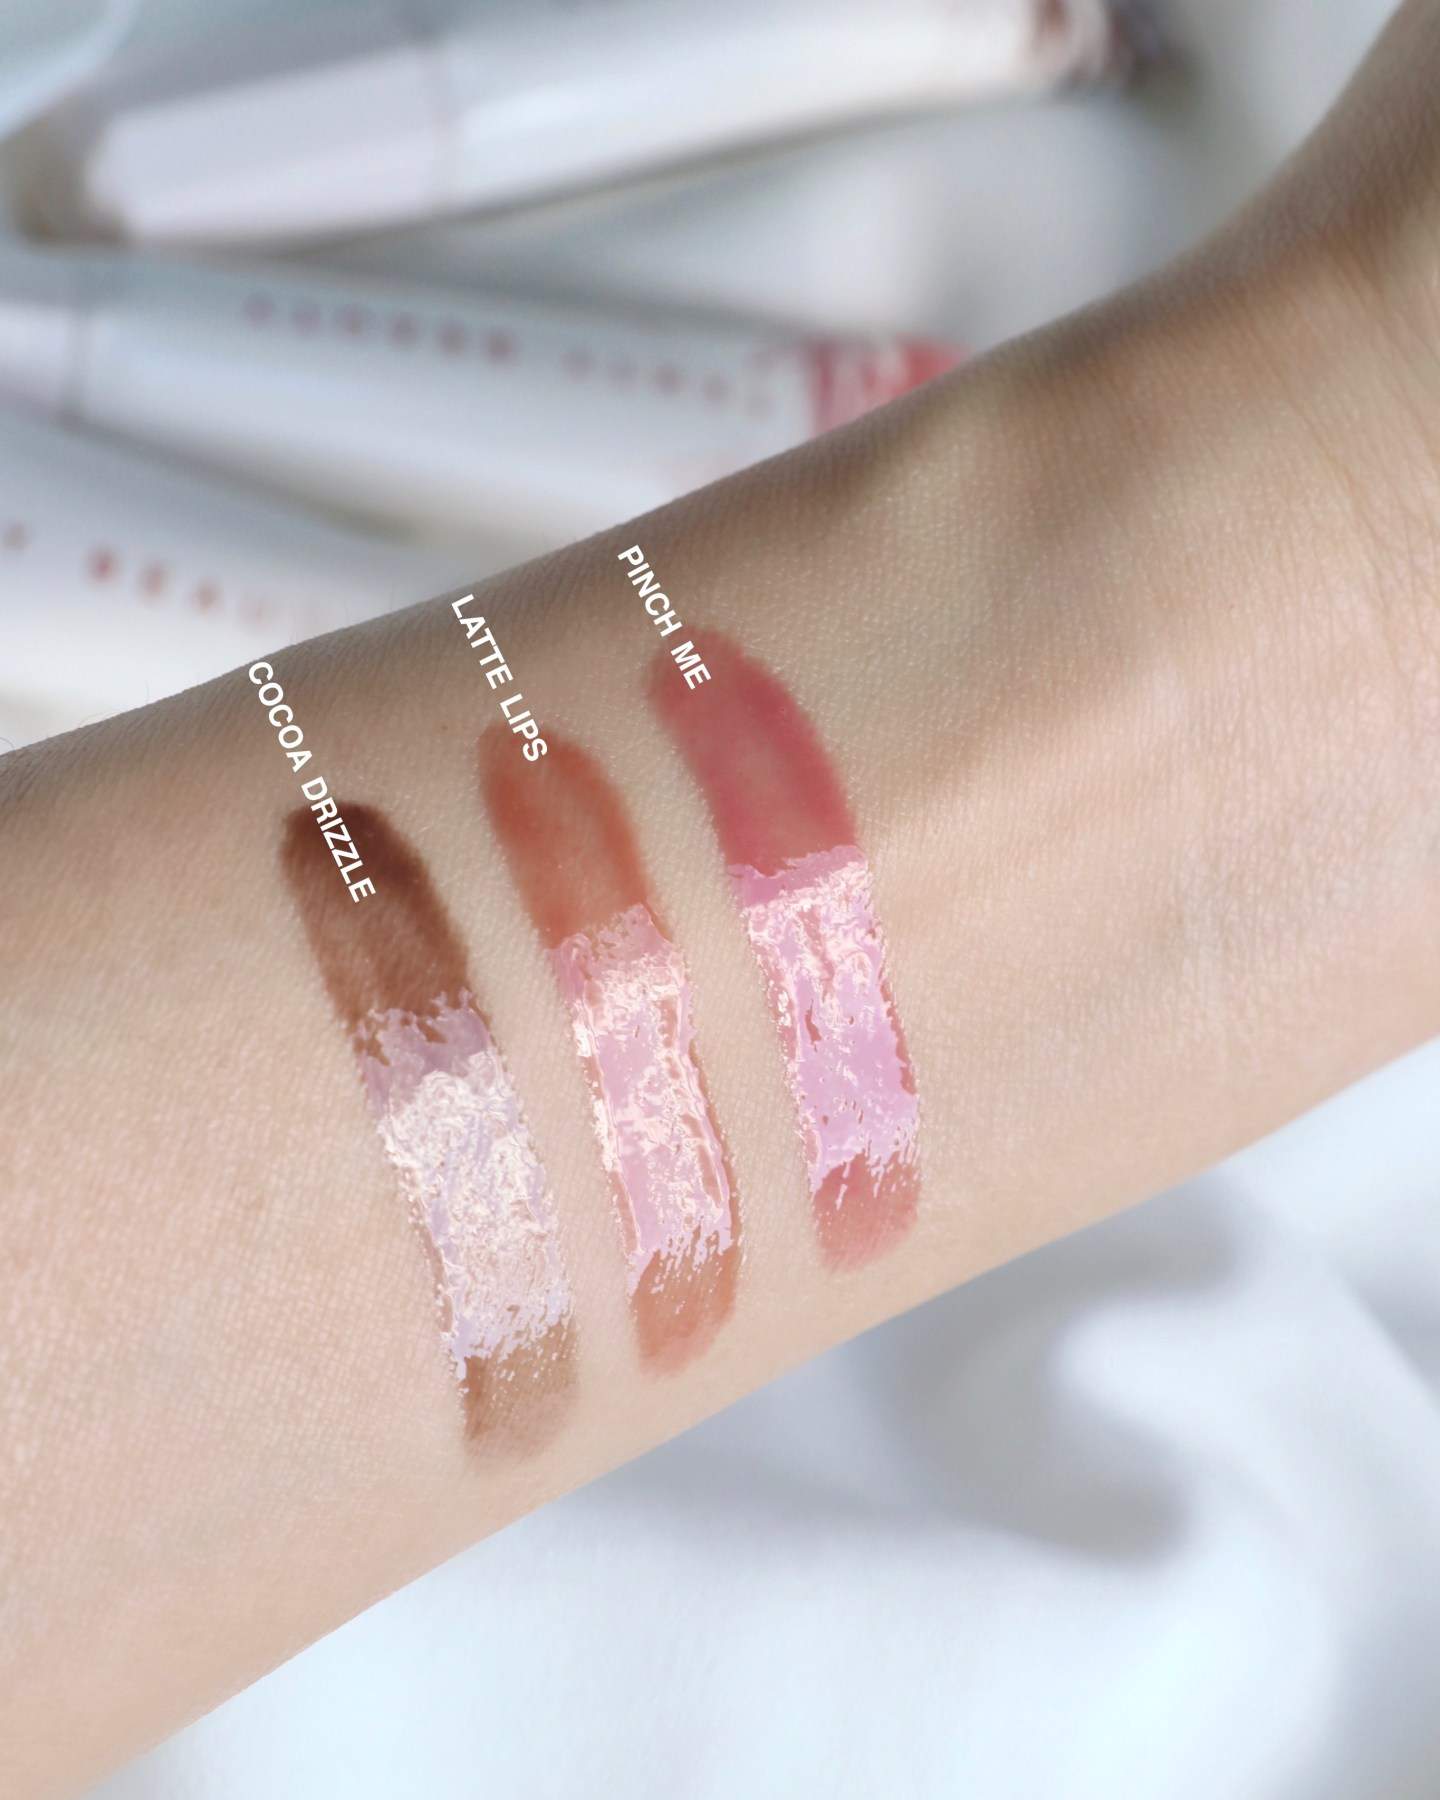 Fenty Beauty PRO KISS'R LUSCIOUS LIP BALM Swatches